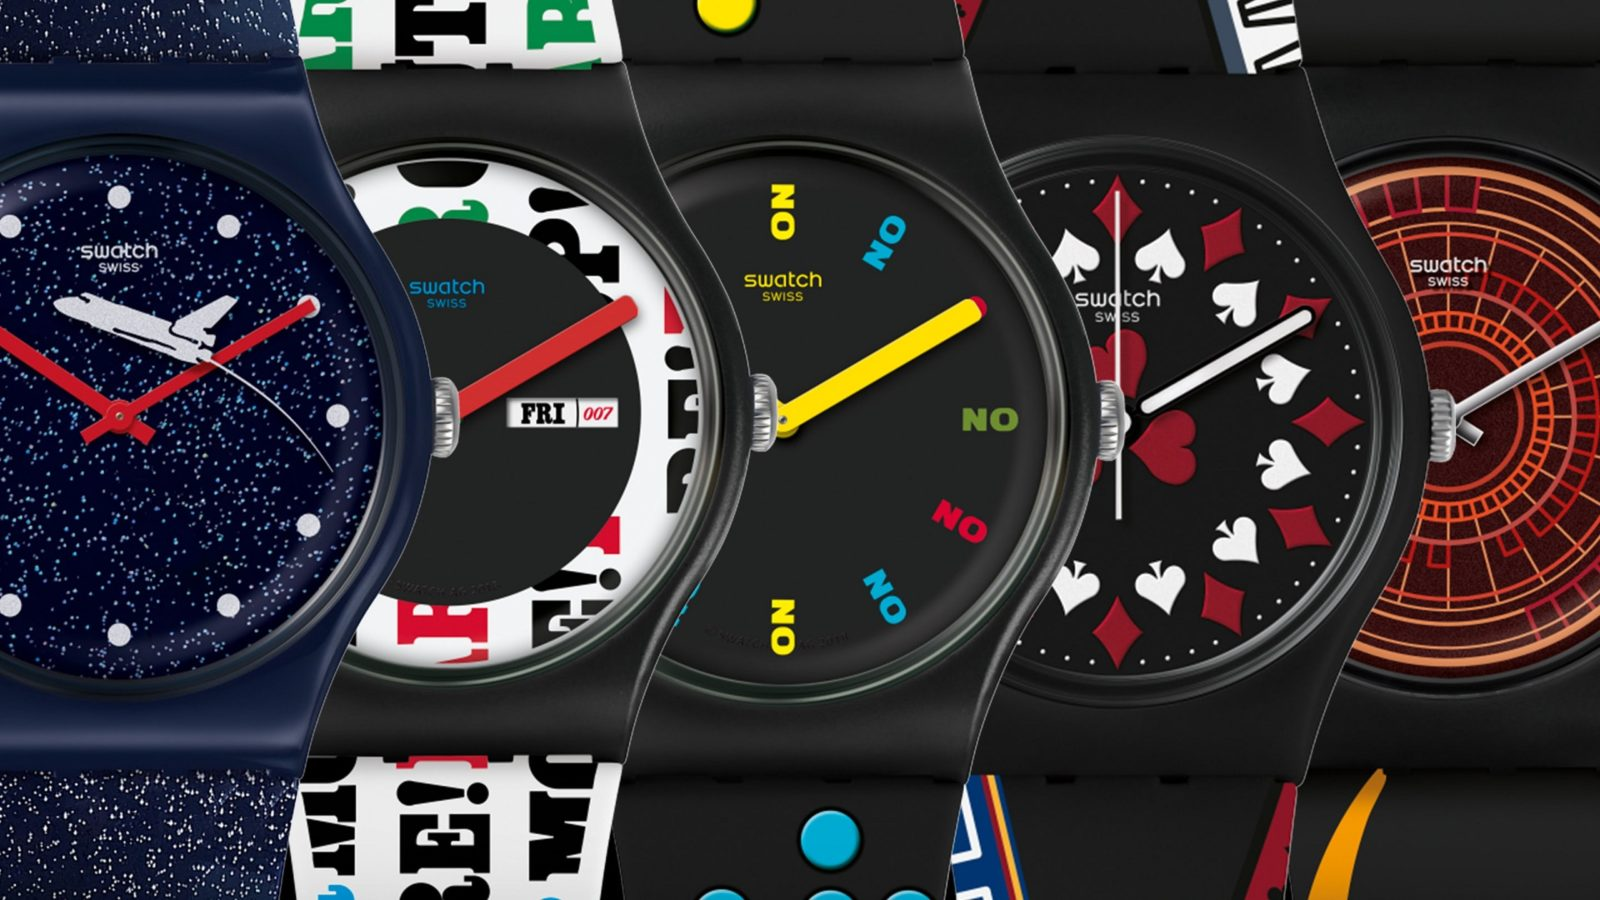 The Swatch x 007 collection: Six iconic James Bond films, retrofitted as wrist wear